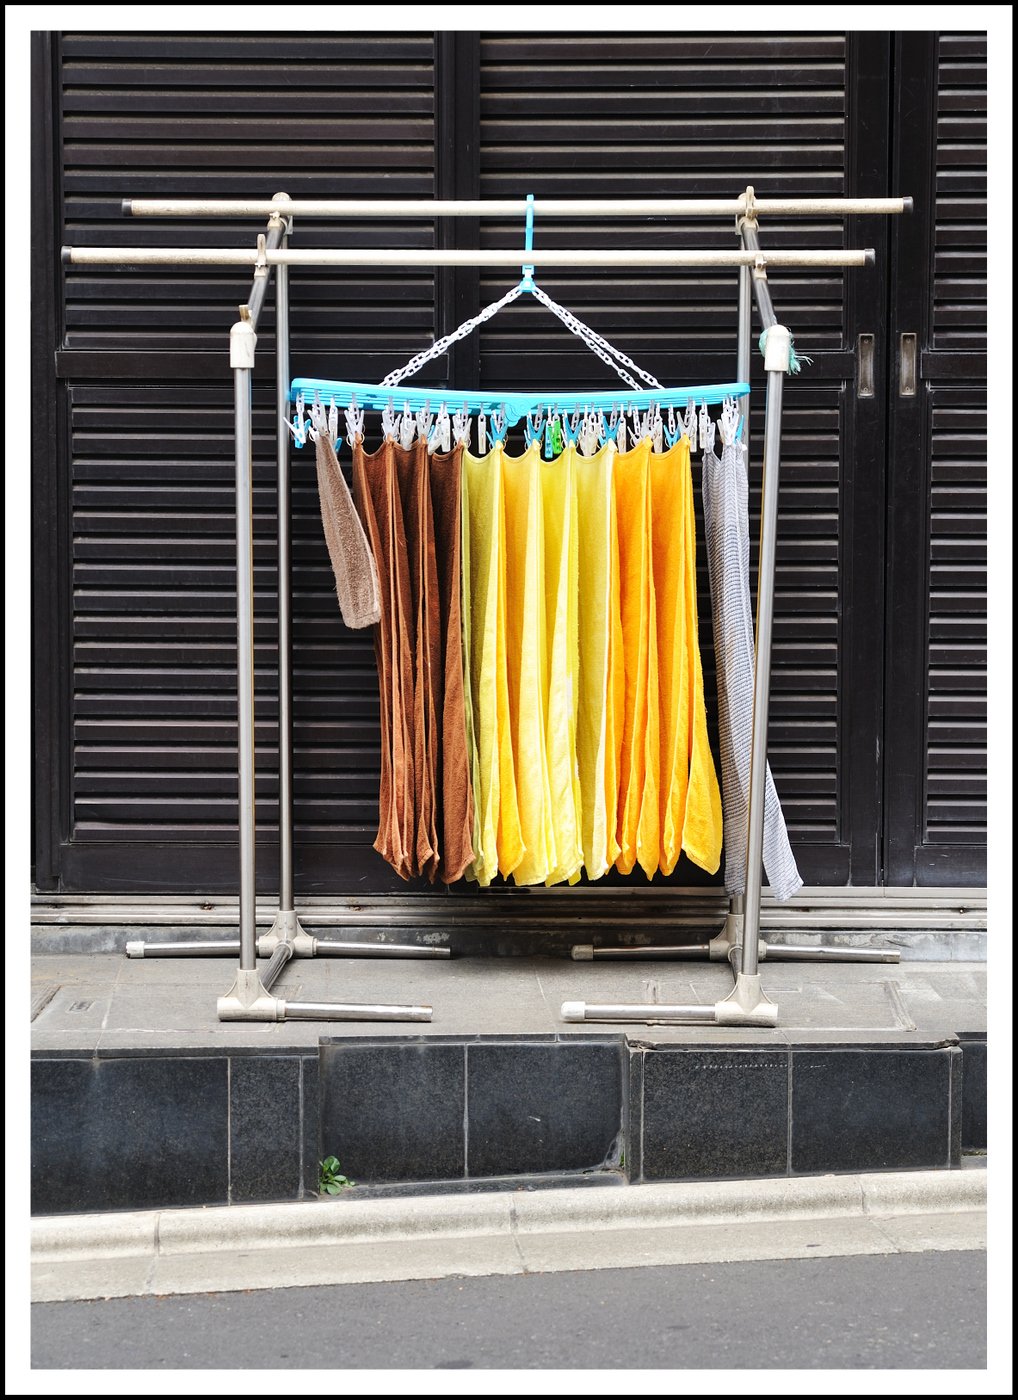 Day 183 July 2<br /> I had a Dr. appointment in Sangenjaya so took my camera along. On the way, I spotted these towels out drying in front of a beauty parlor. It was early, so the shop wasn't open yet.